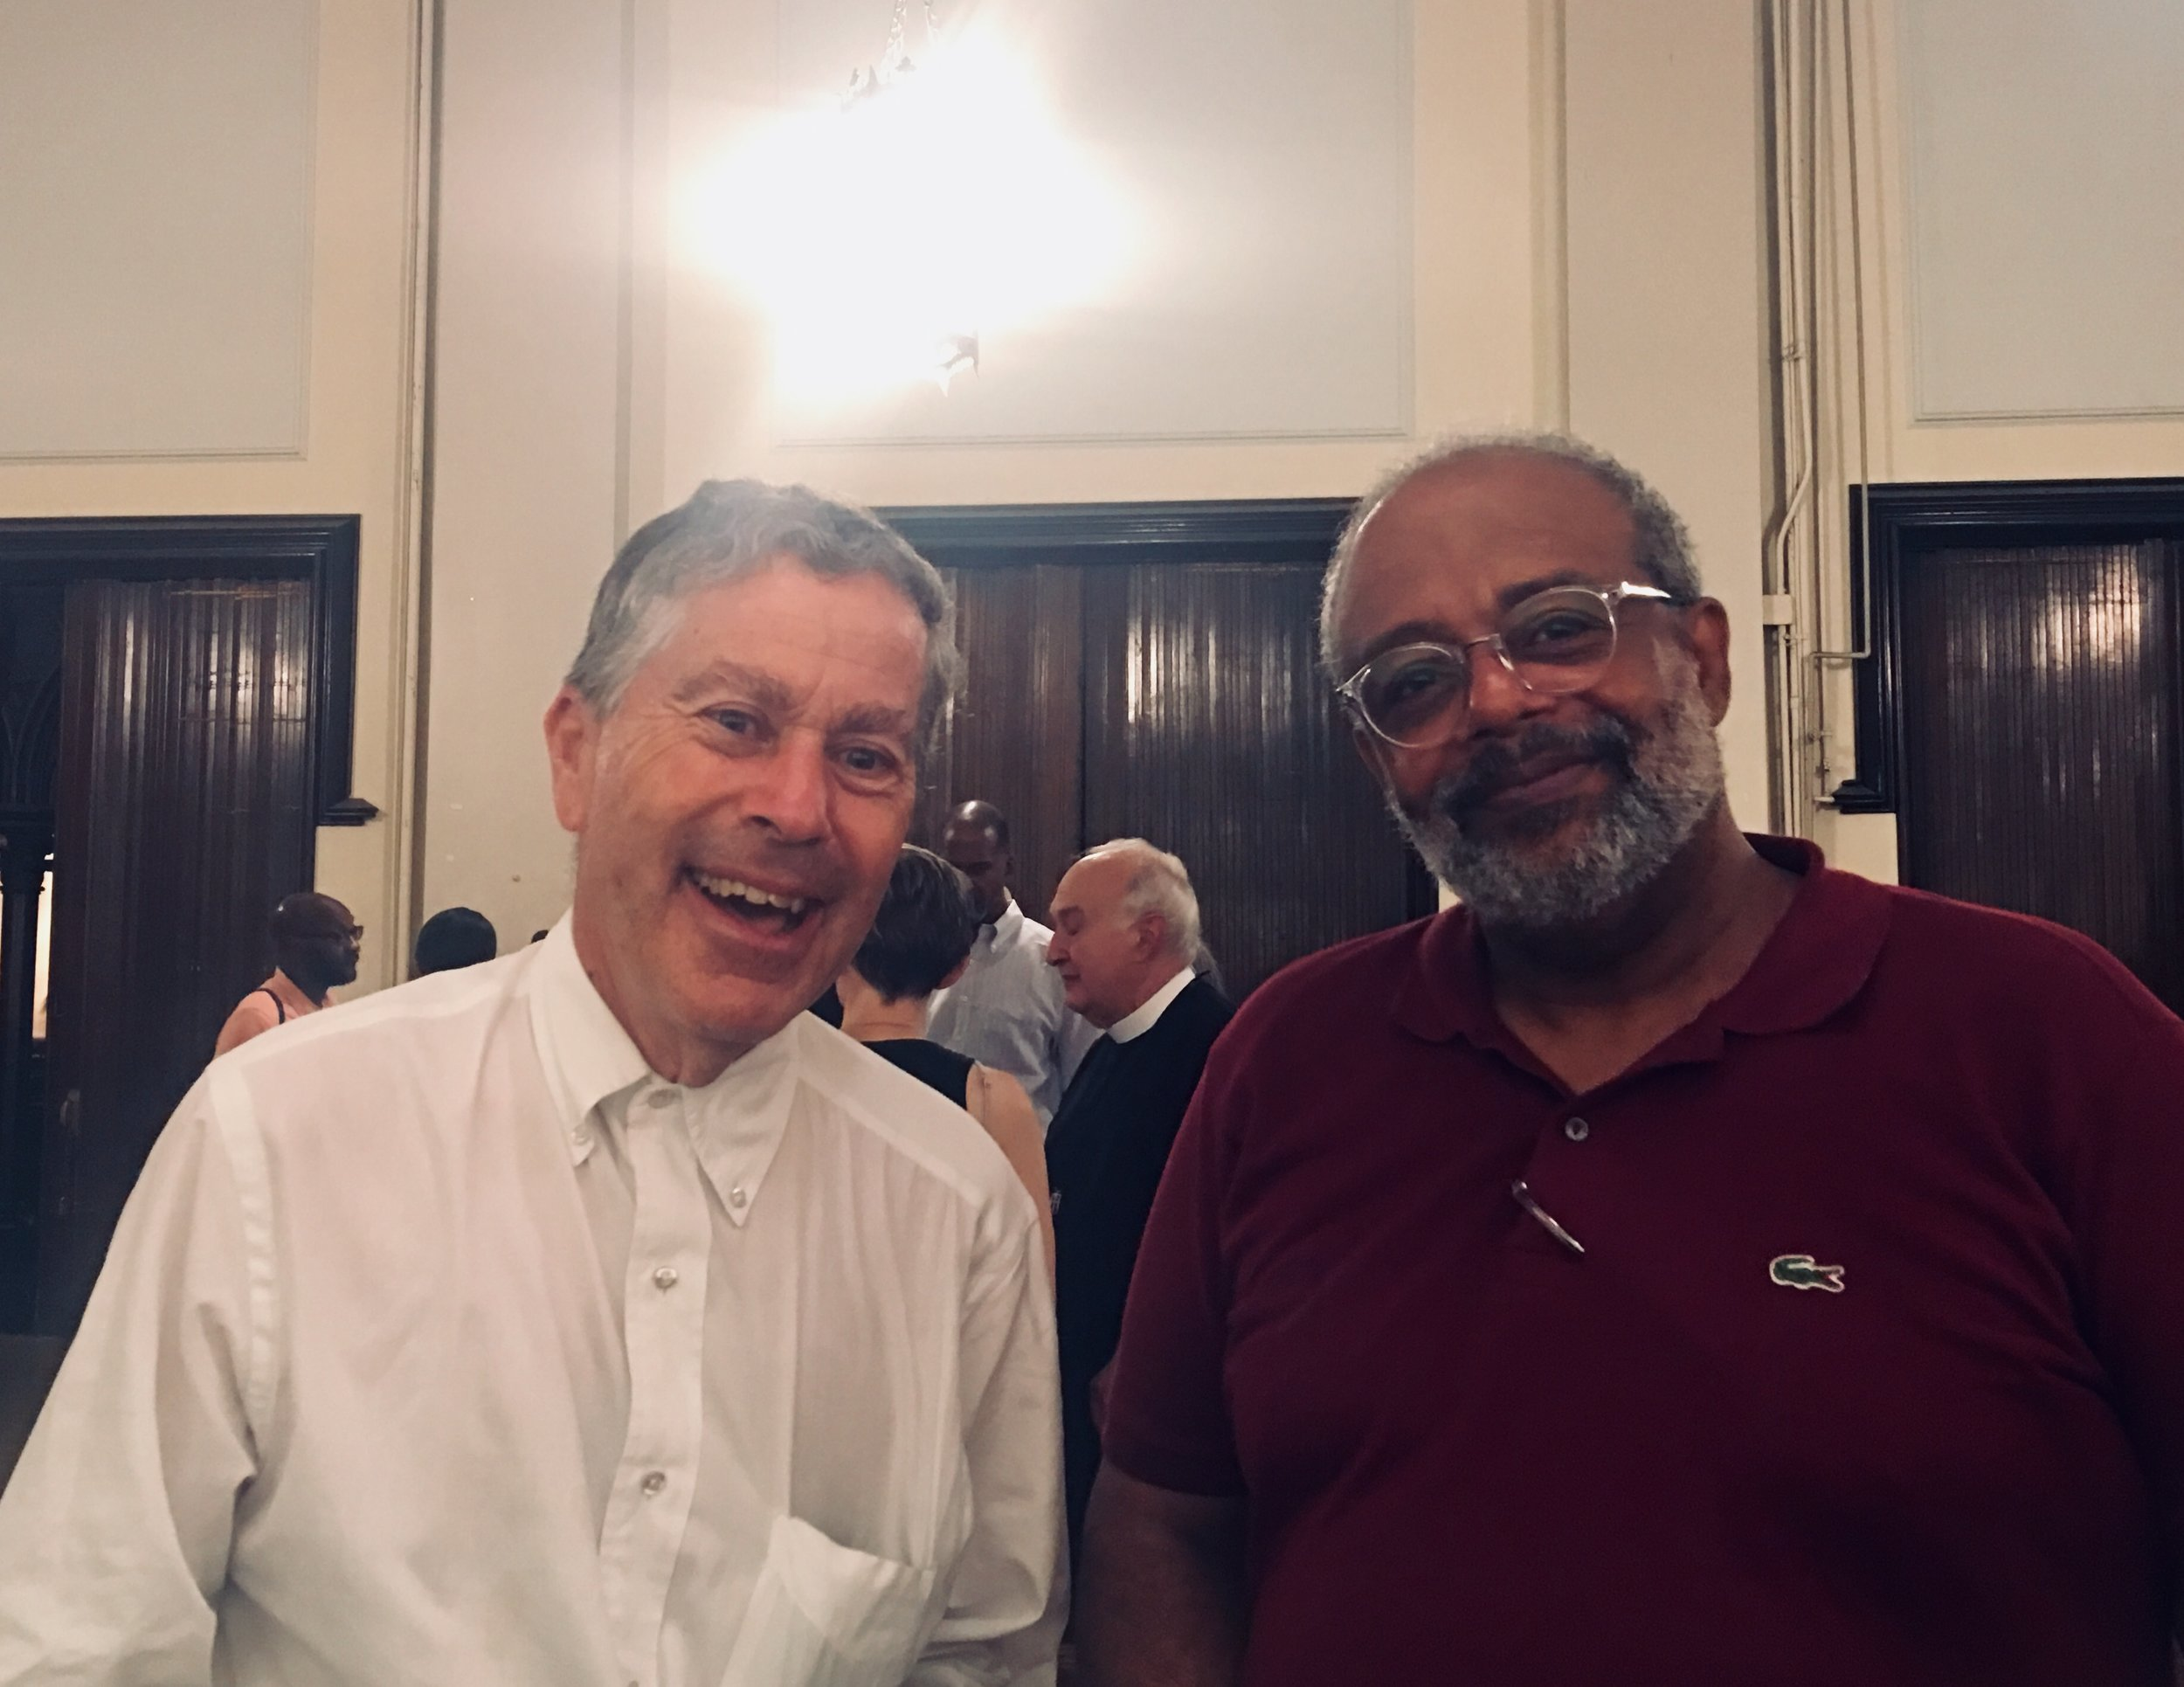 Parishioners Kenneth Isler (L) and Blair Burroughs at Coffee Hour after the Solemn Mass.    Photo:  Renee Pecquex